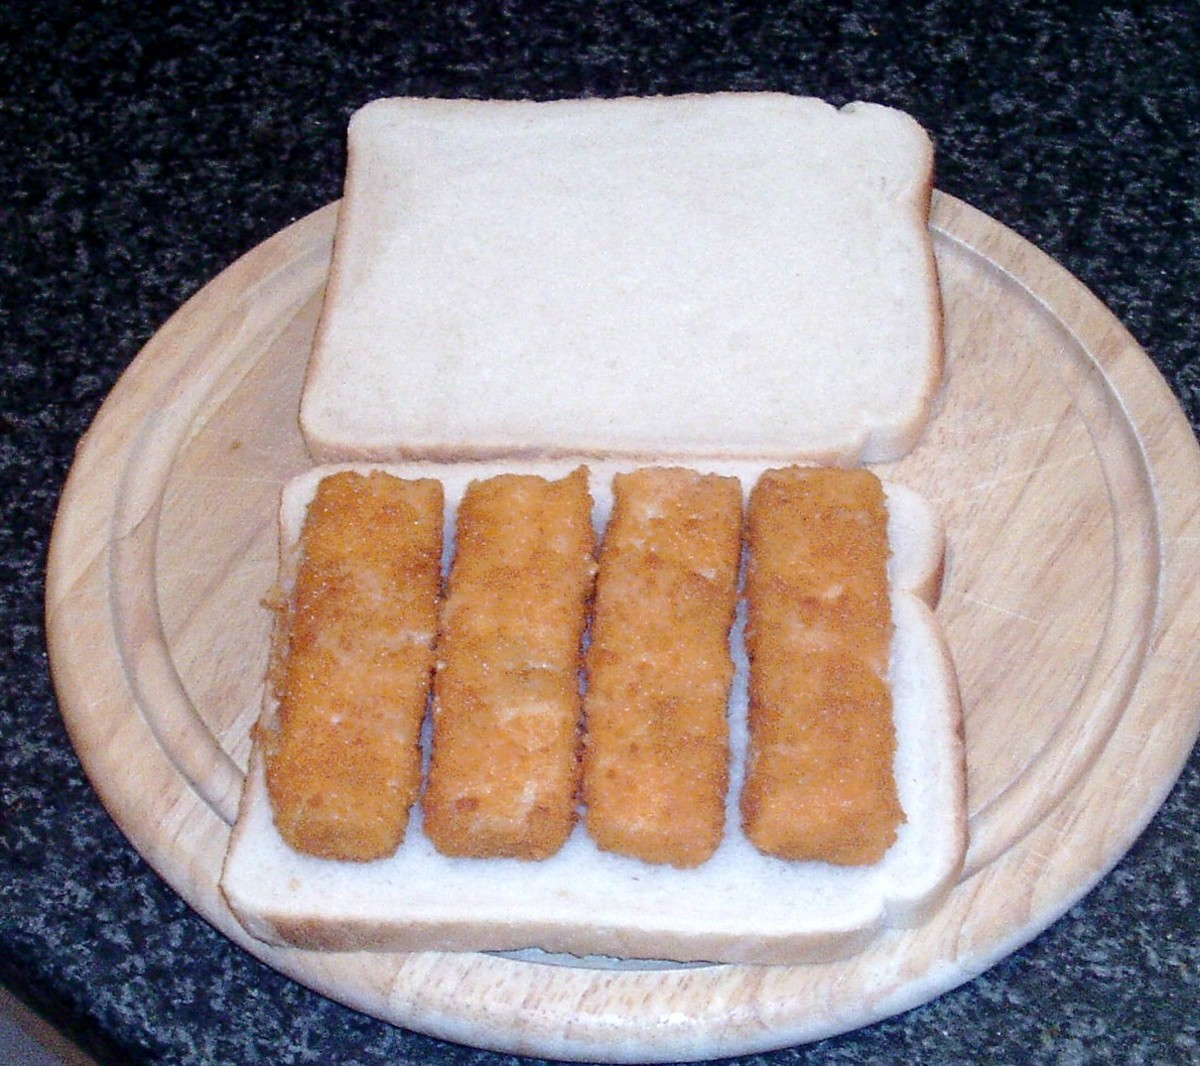 Fish fingers are laid on bottom slice of bread